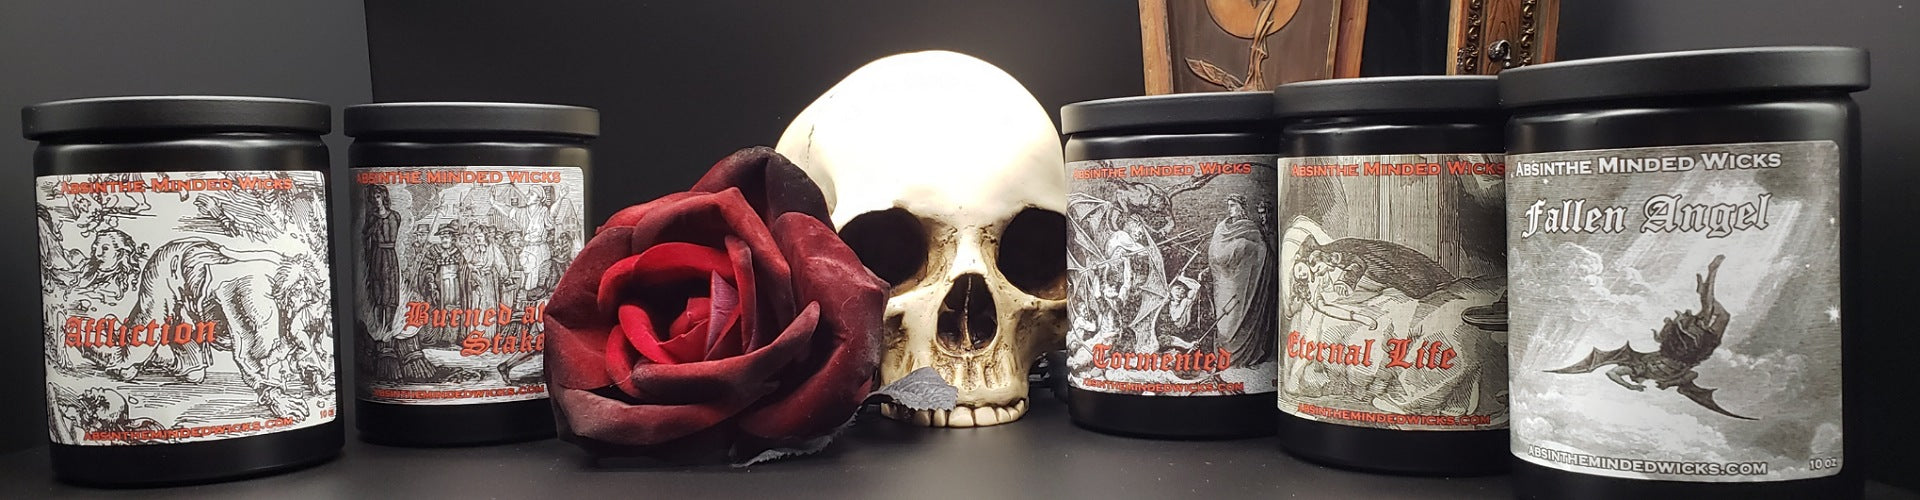 Absinthe Minded Wicks - Candle Care